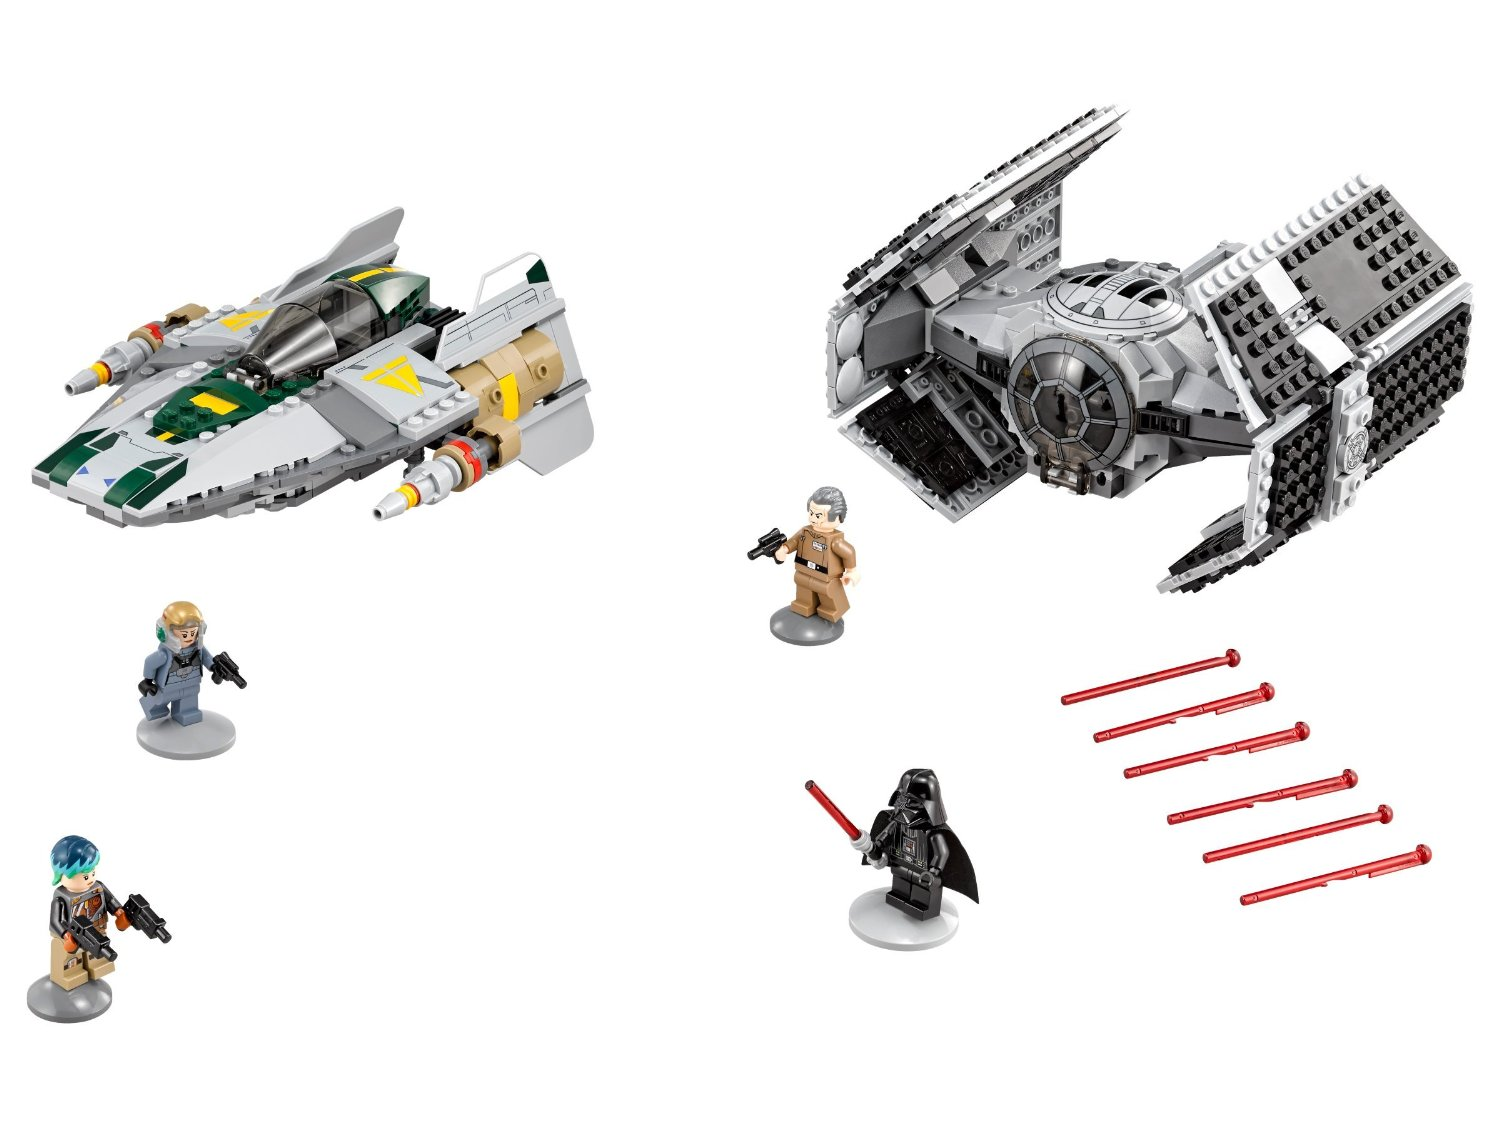 75150-vader tie advanced vs awing starfighter-bo minifig